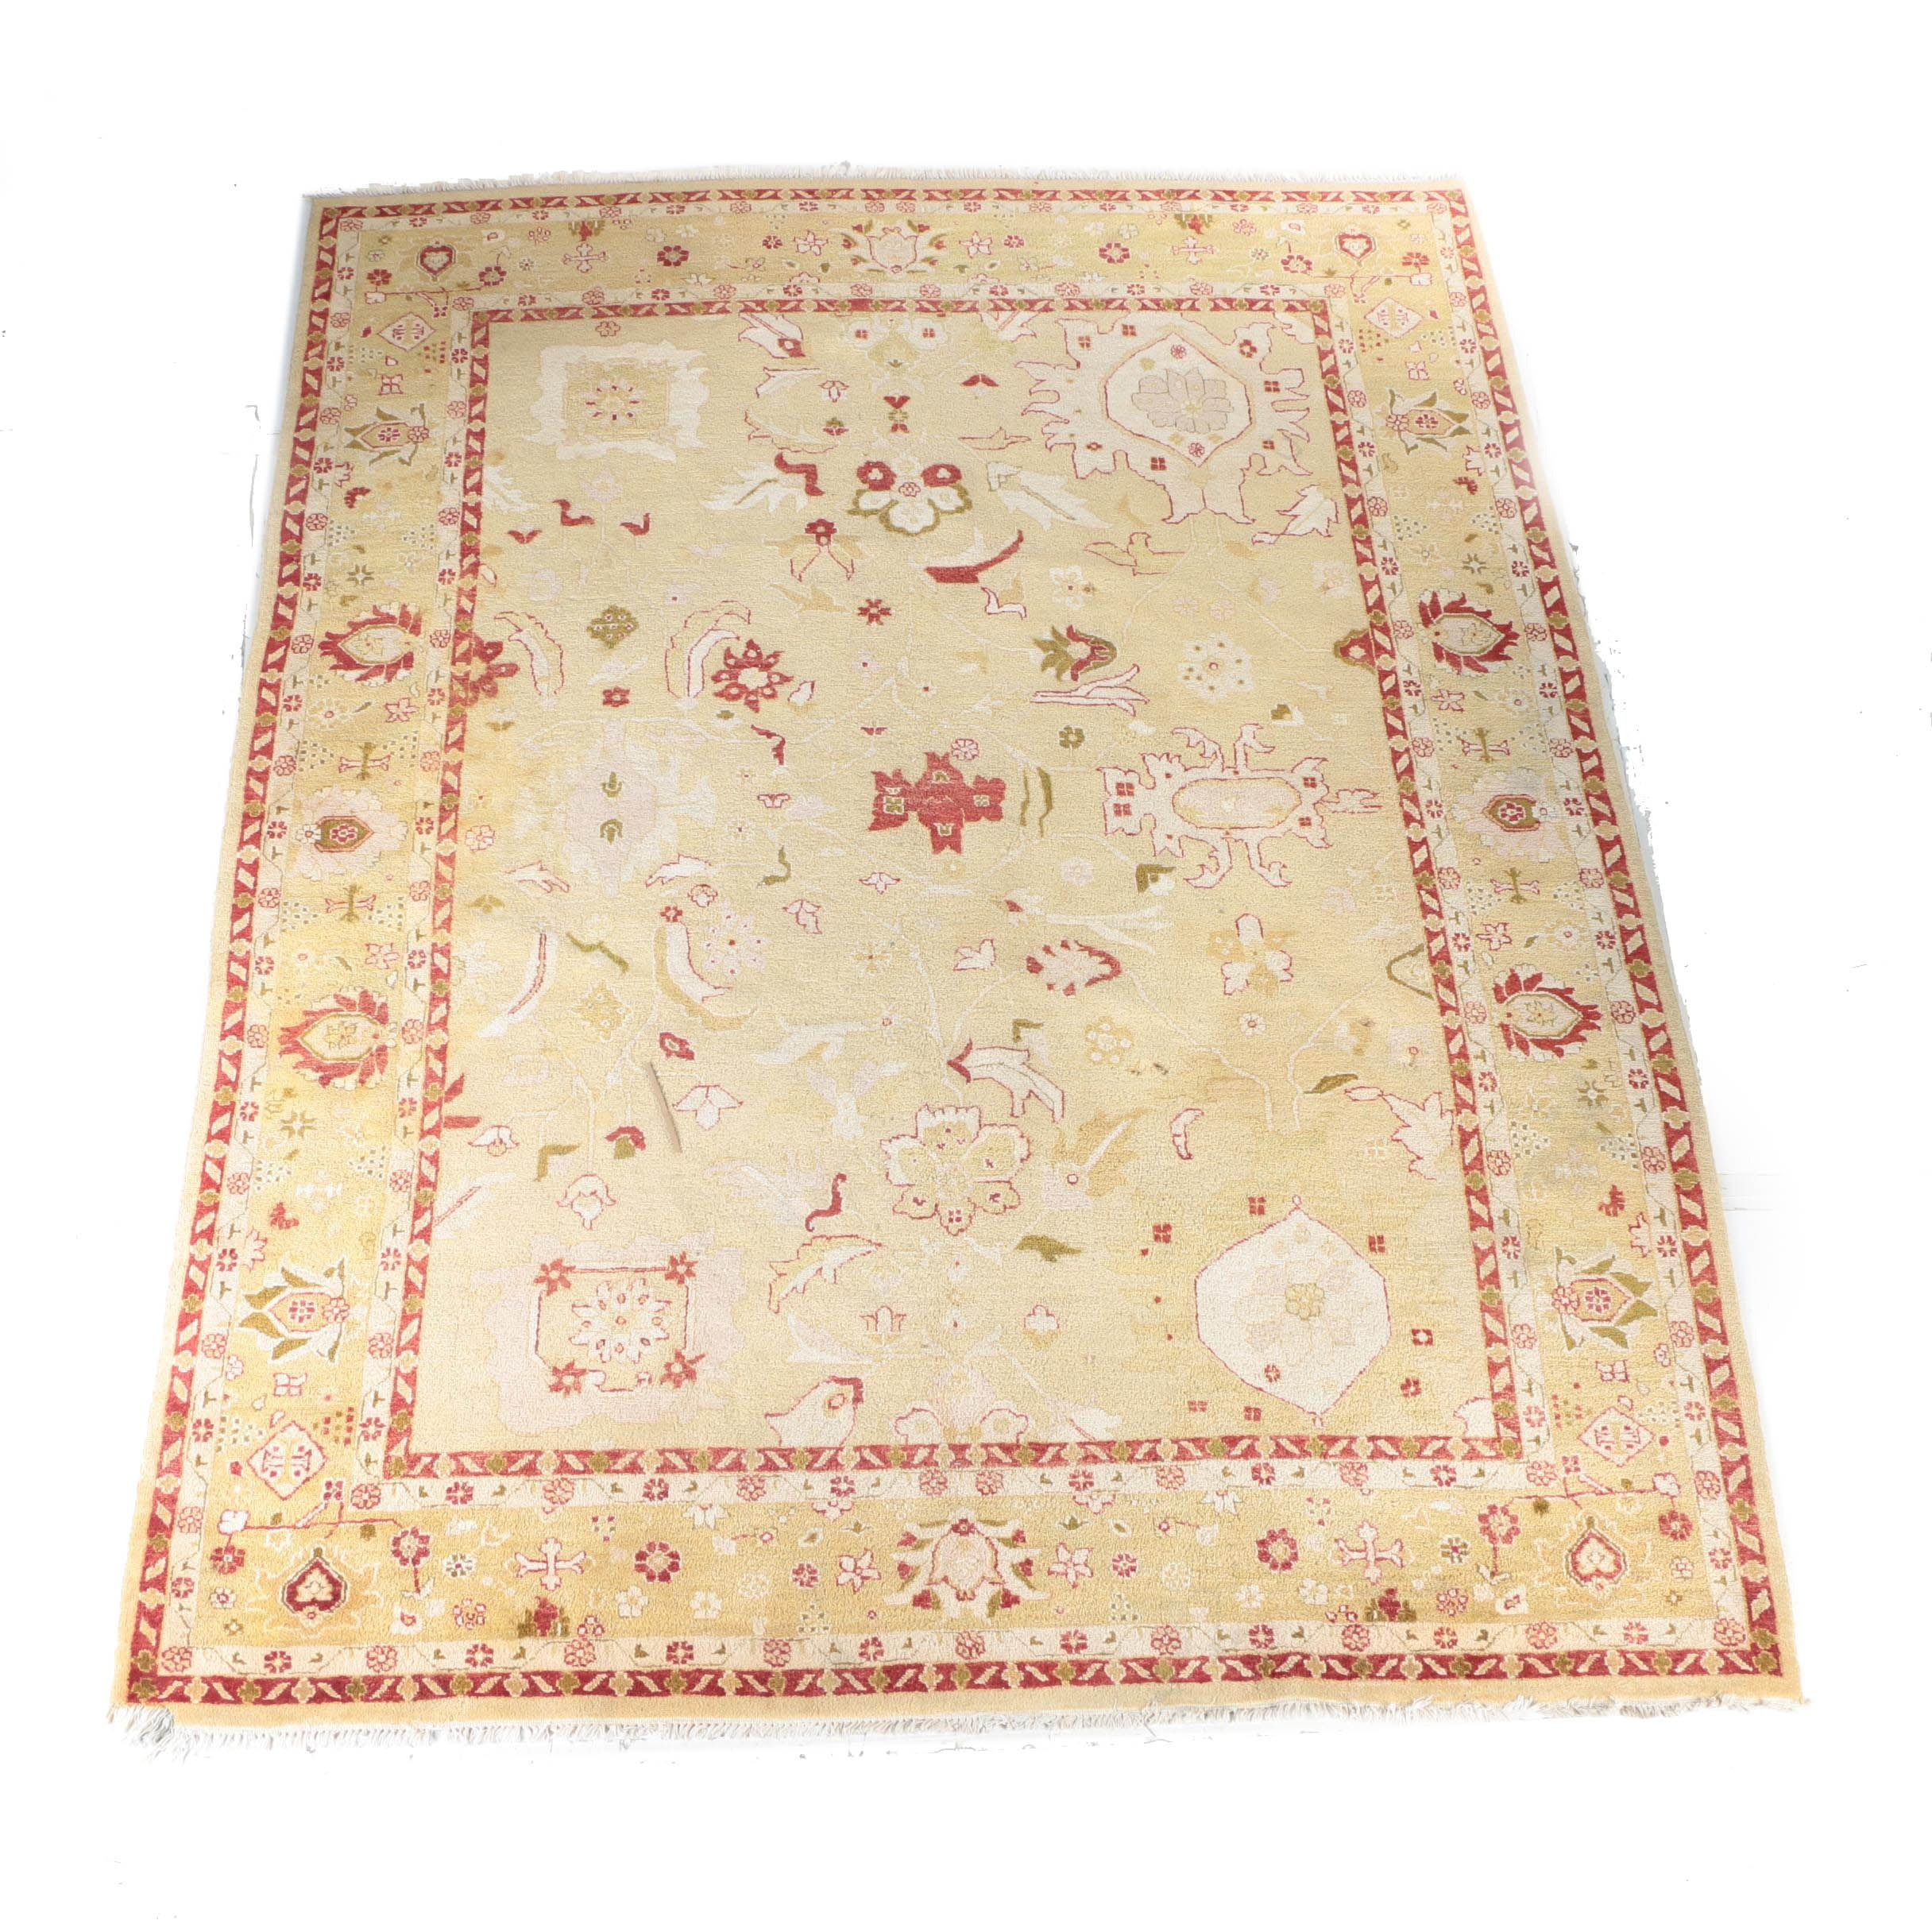 Hand-Knotted Indo-Oushak Style Wool Area Rug